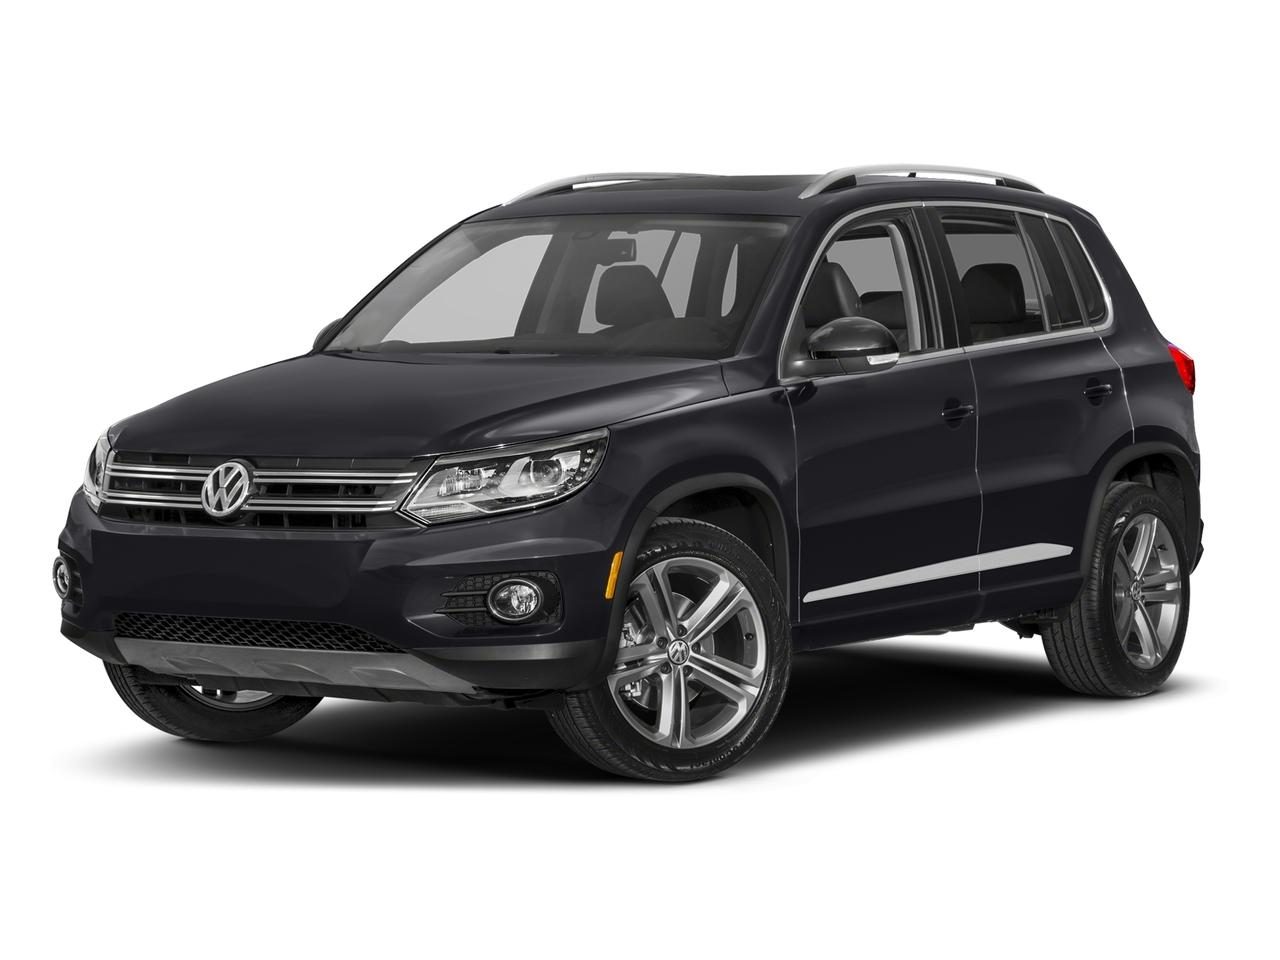 2017 Volkswagen Tiguan Vehicle Photo in Oshkosh, WI 54904